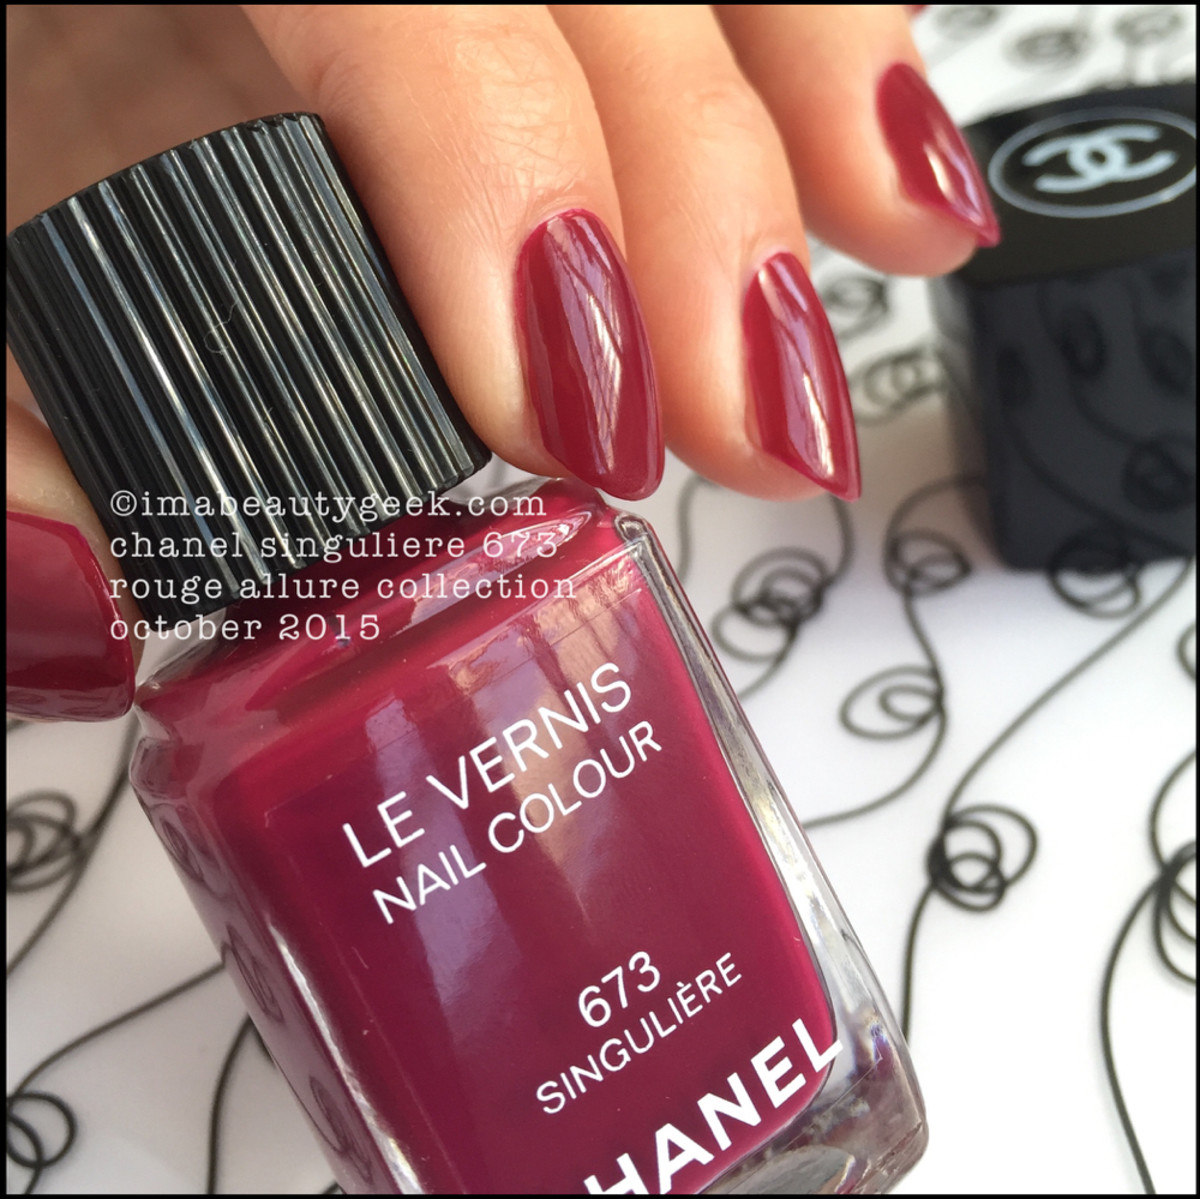 Chanel Rouge Allure Collection 2015 Singuliere 673 Nail Polish